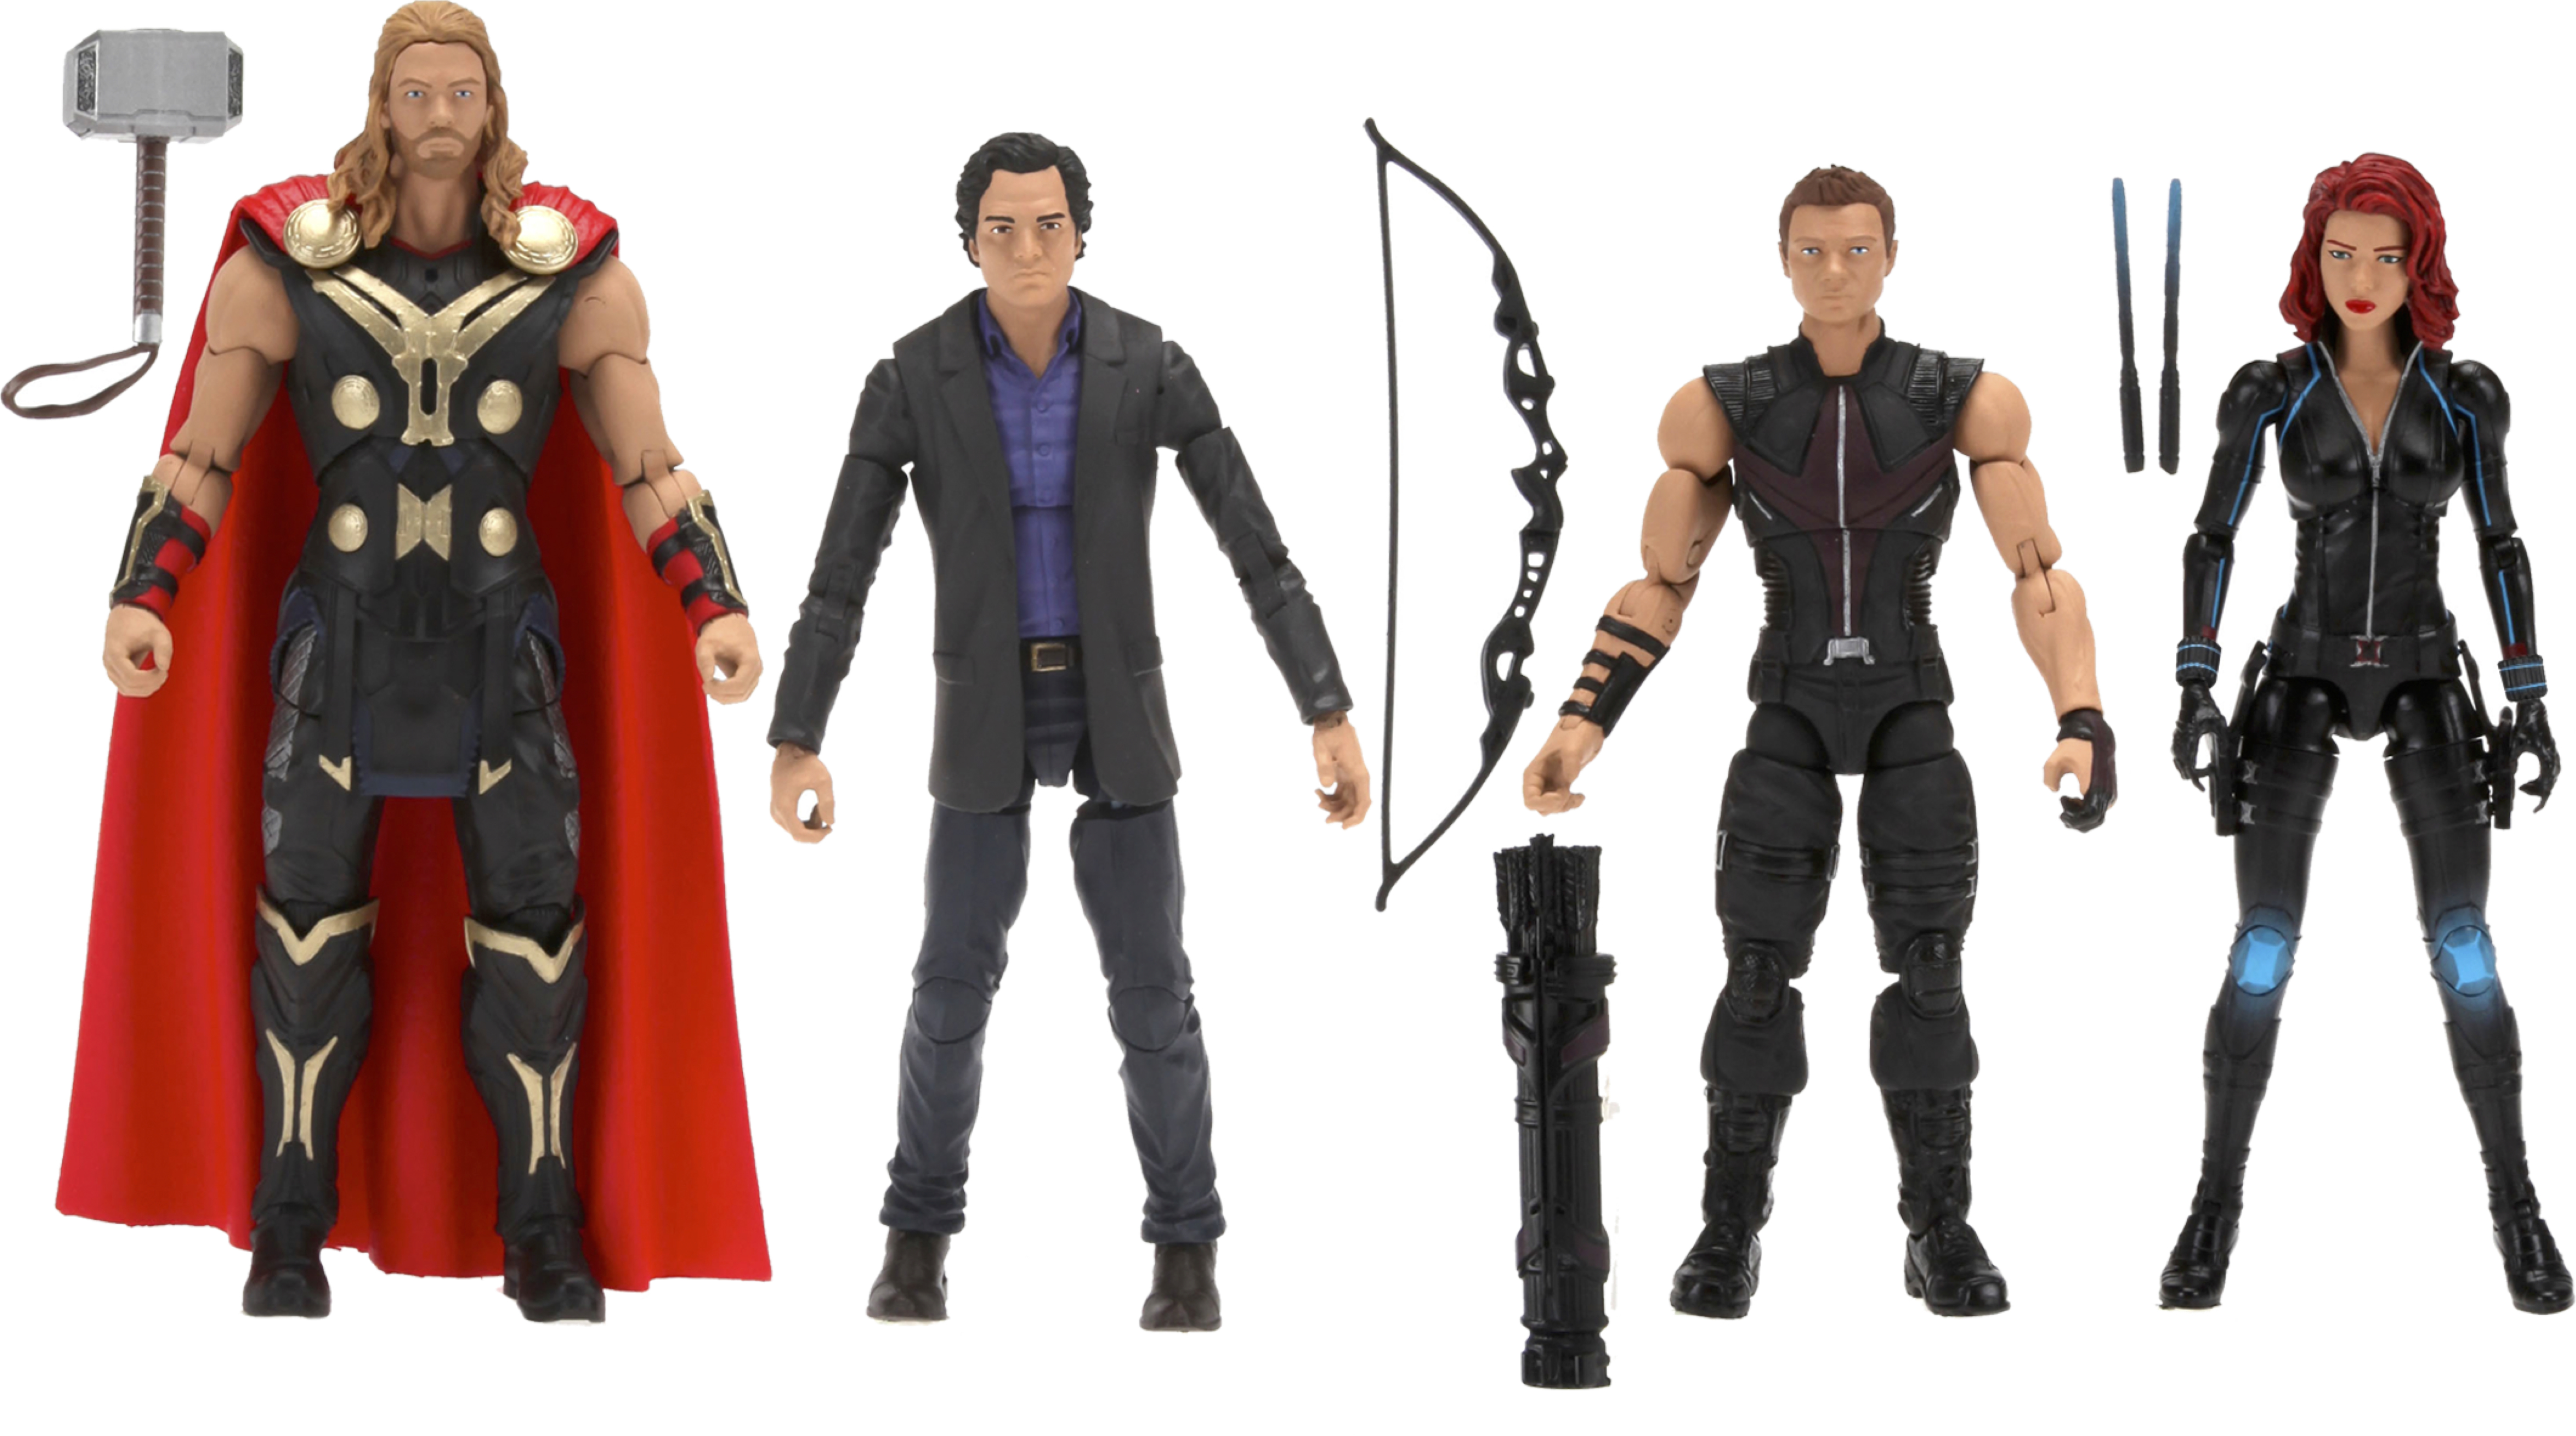 Amazon 4-pack. Ruffalo!